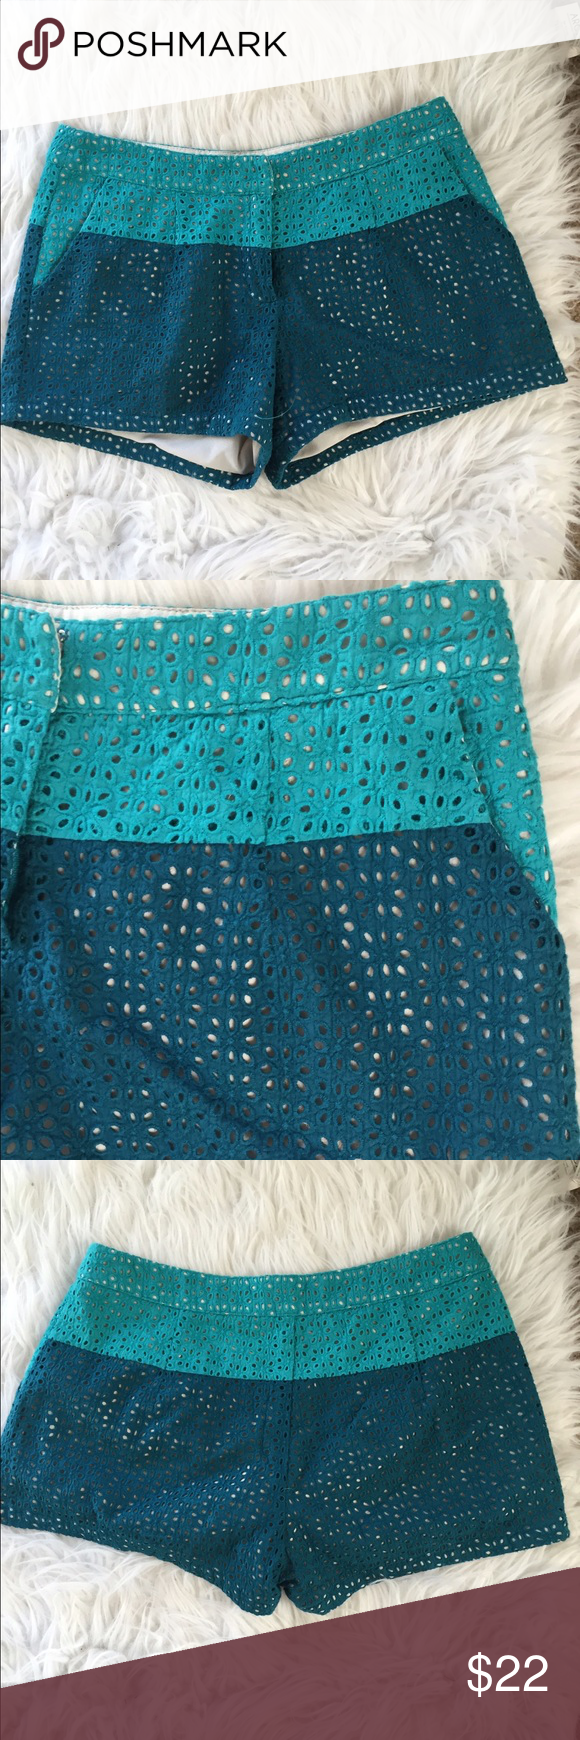 🎉HP🎉c.luce two toned shorts So cute!!! 100% cotton. Great condition apart from small marker spot on the inside which is NOT noticeable from the outside. 🎉Host Pick 3.27.17 Flirty Favorites🎉❌Trades/Outside Transactions❌ 😻 friendly home 😻 💅🏼Serious buyers only ❤️Bundles of 5 or more listings get HALF OFF YOUR WHOLE PURCHASE!❤️-separate listing must be made. Please ask!  📦Buyer pays extra shipping when applicable📦 💓Some colors vary in person!-inc. blues and greens!  😘thank you…